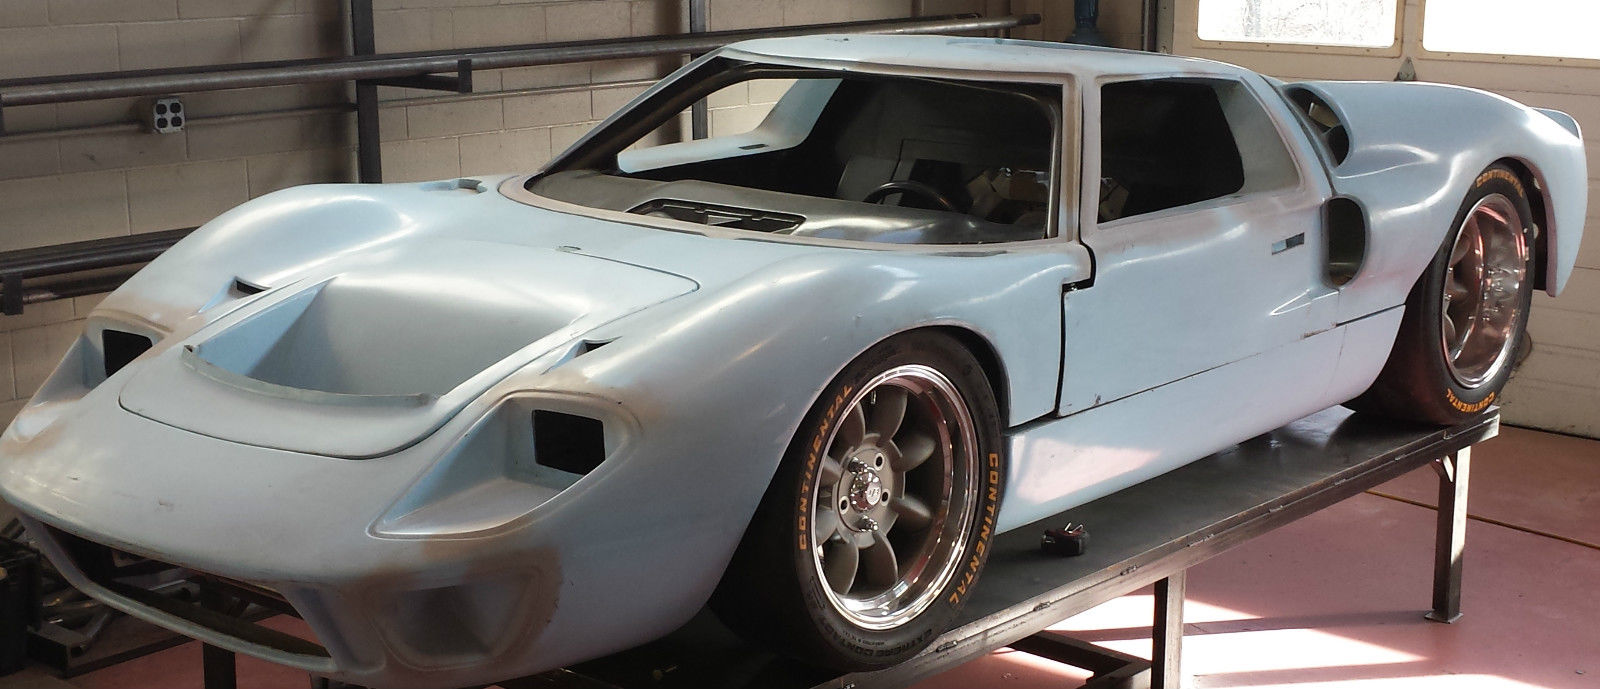 Gt40 Build For Sale In Reading Pennsylvania United States